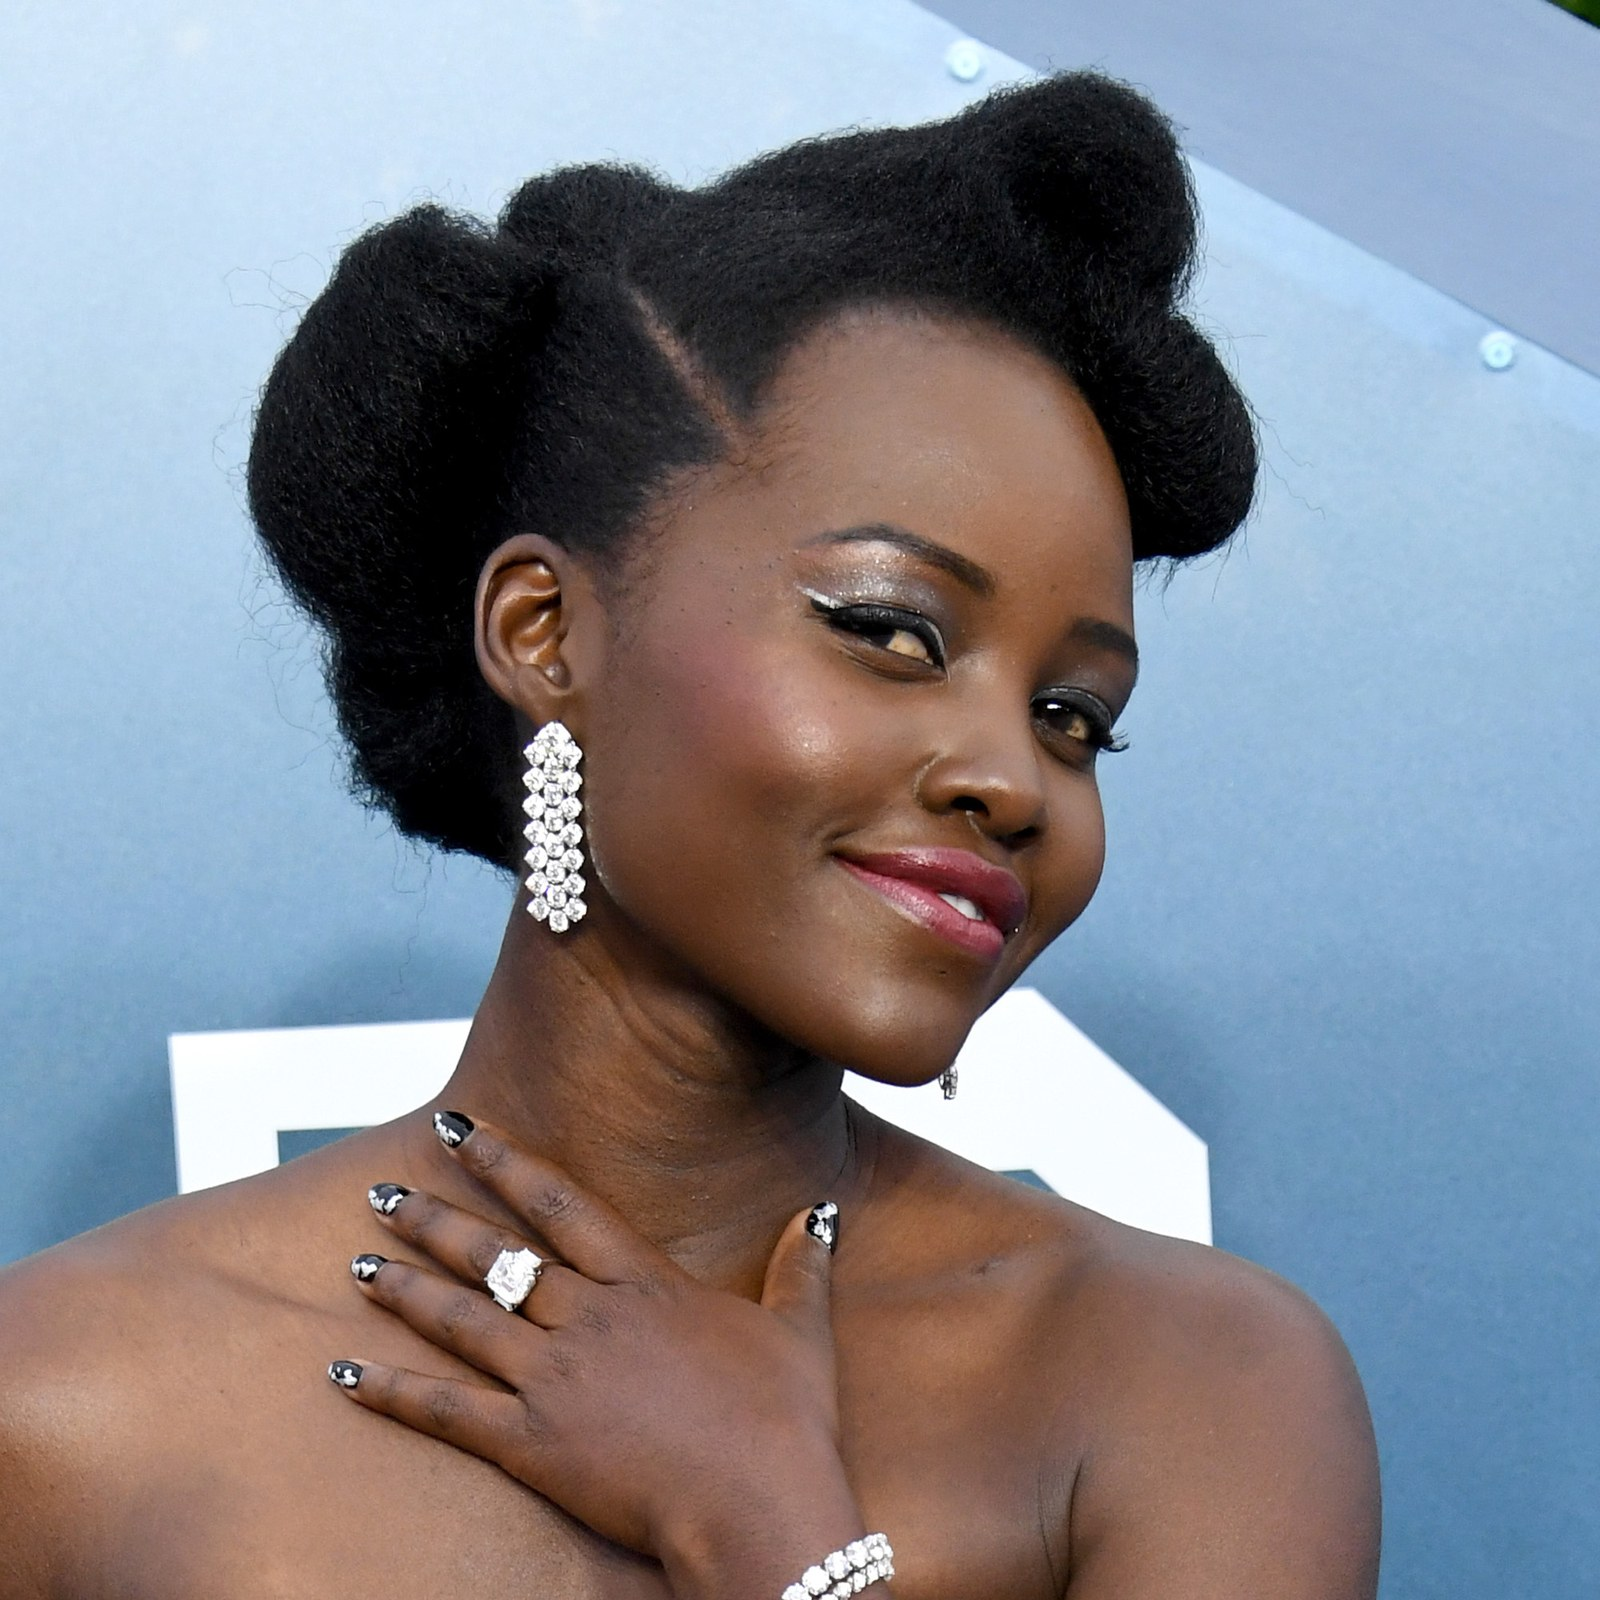 SAG Awards 2020 beauty Lupita Nyong'o